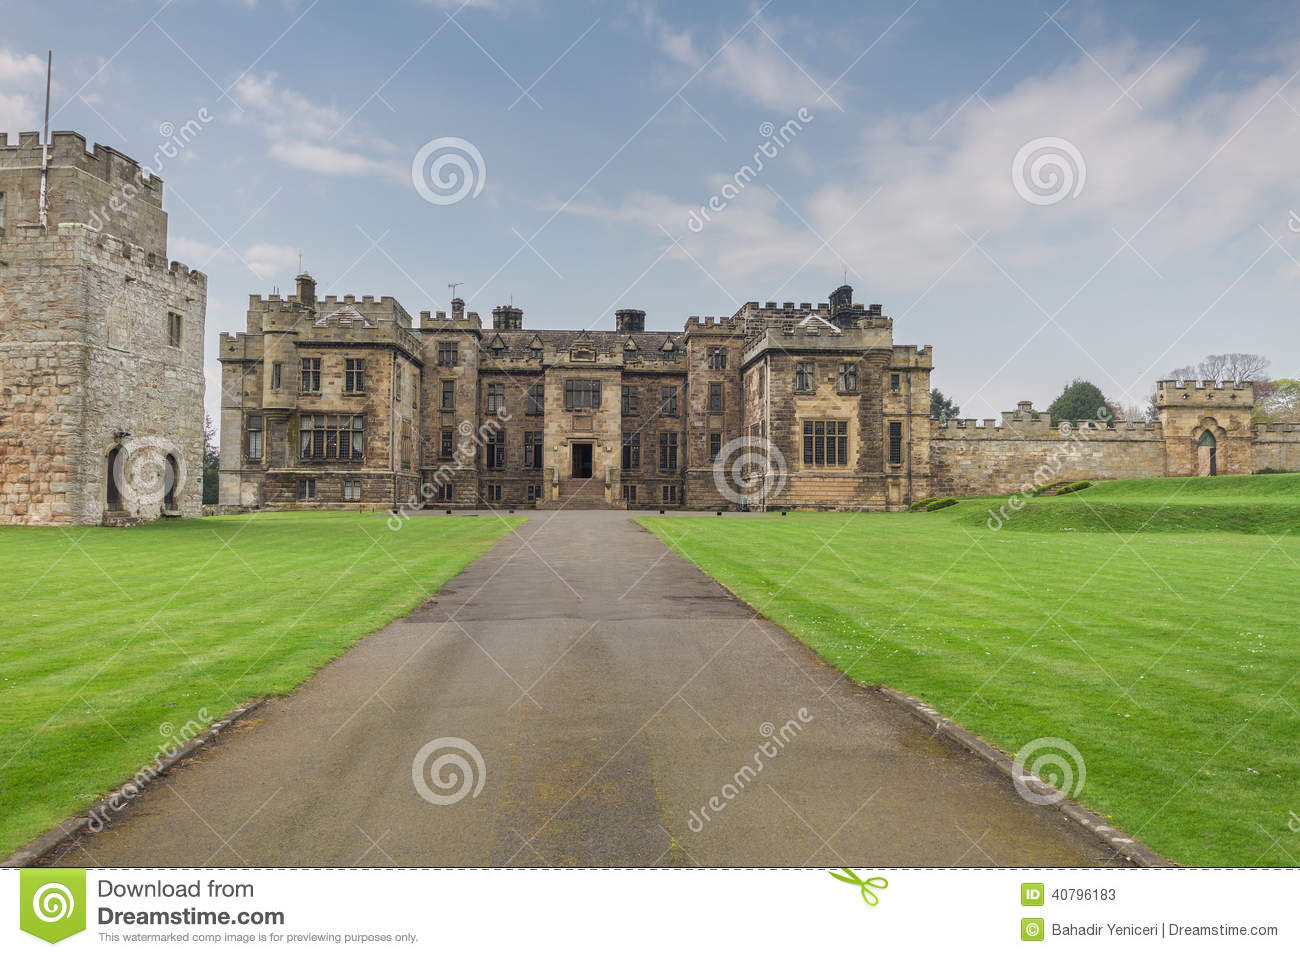 Film Sulla Guerra In Vietnam moreover Stock Photos Ford Castle Northumberland England Image40796183 additionally Logan 2017 Marvel Movie as well Neighbor Totoro Cat Bus Hd Wallpaper likewise andyblackmoredesign. on battlefield ford